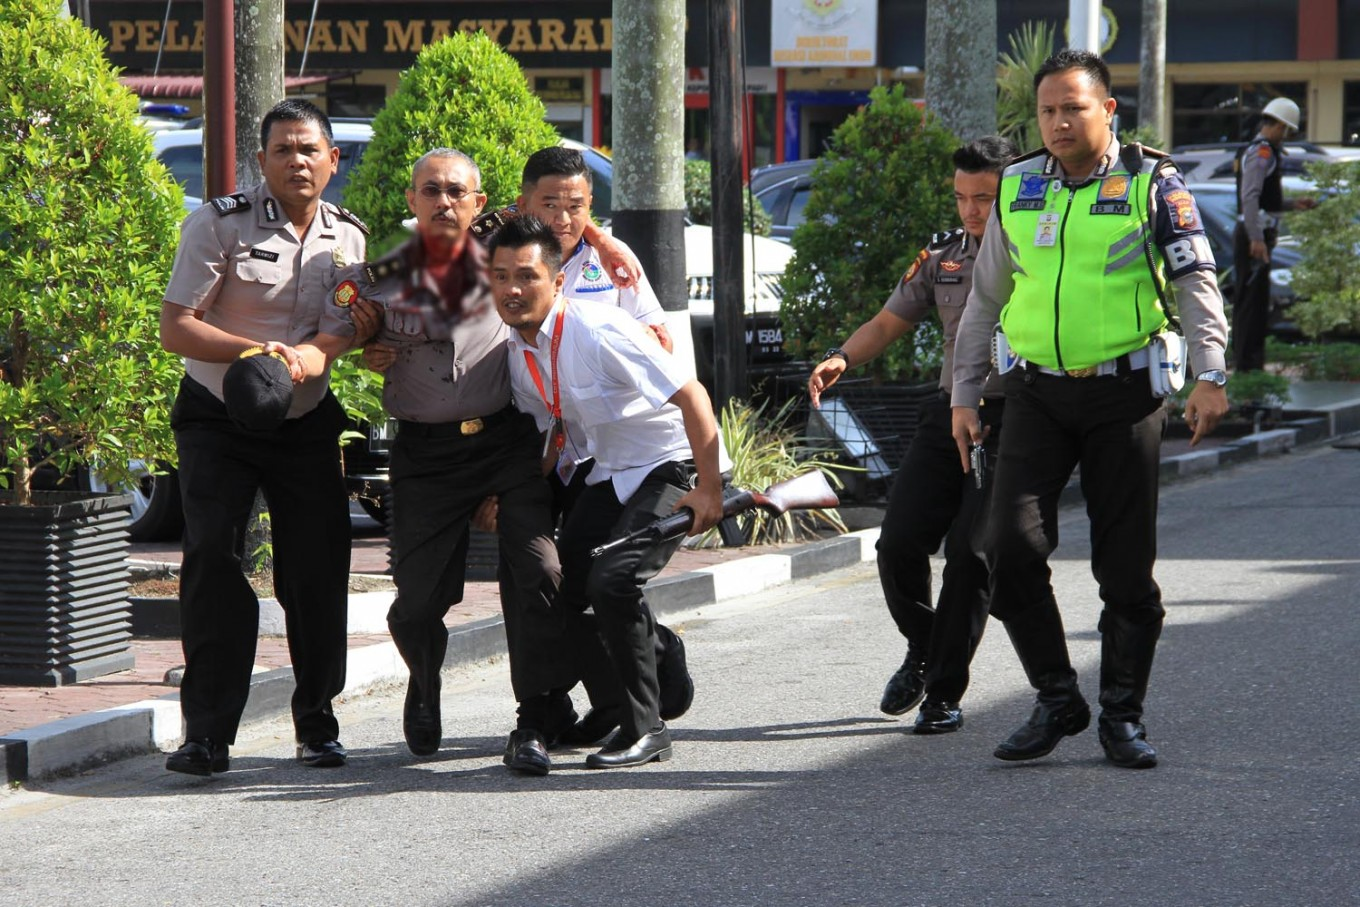 Pontianak airport beefs up security after terror attacks